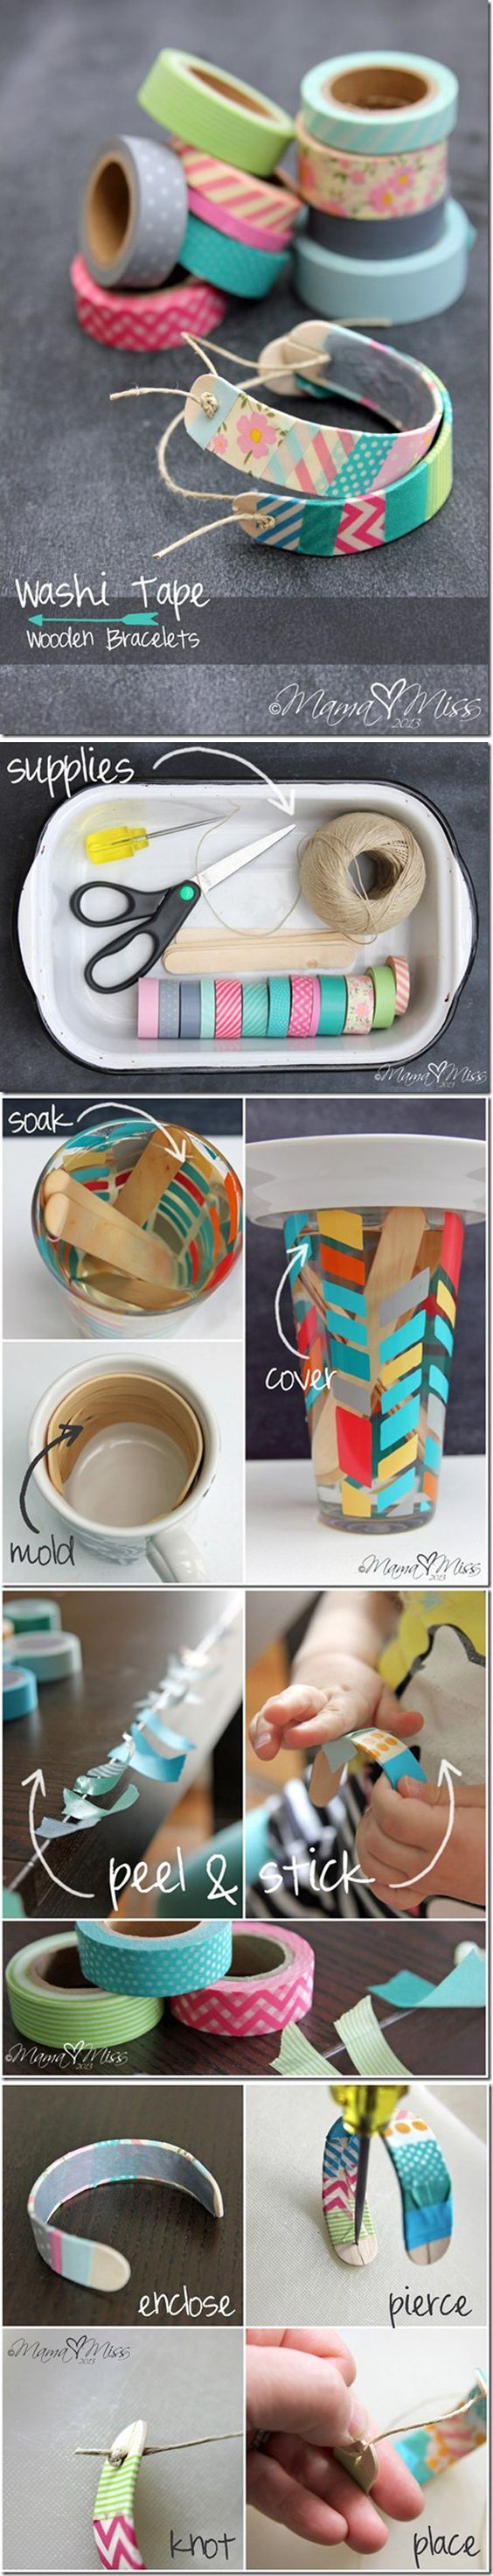 100 Creative Ways to Use Washi Tape DIYReady.com | Easy DIY Crafts, Fun Projects, & DIY Craft Ideas For Kids & Adults: